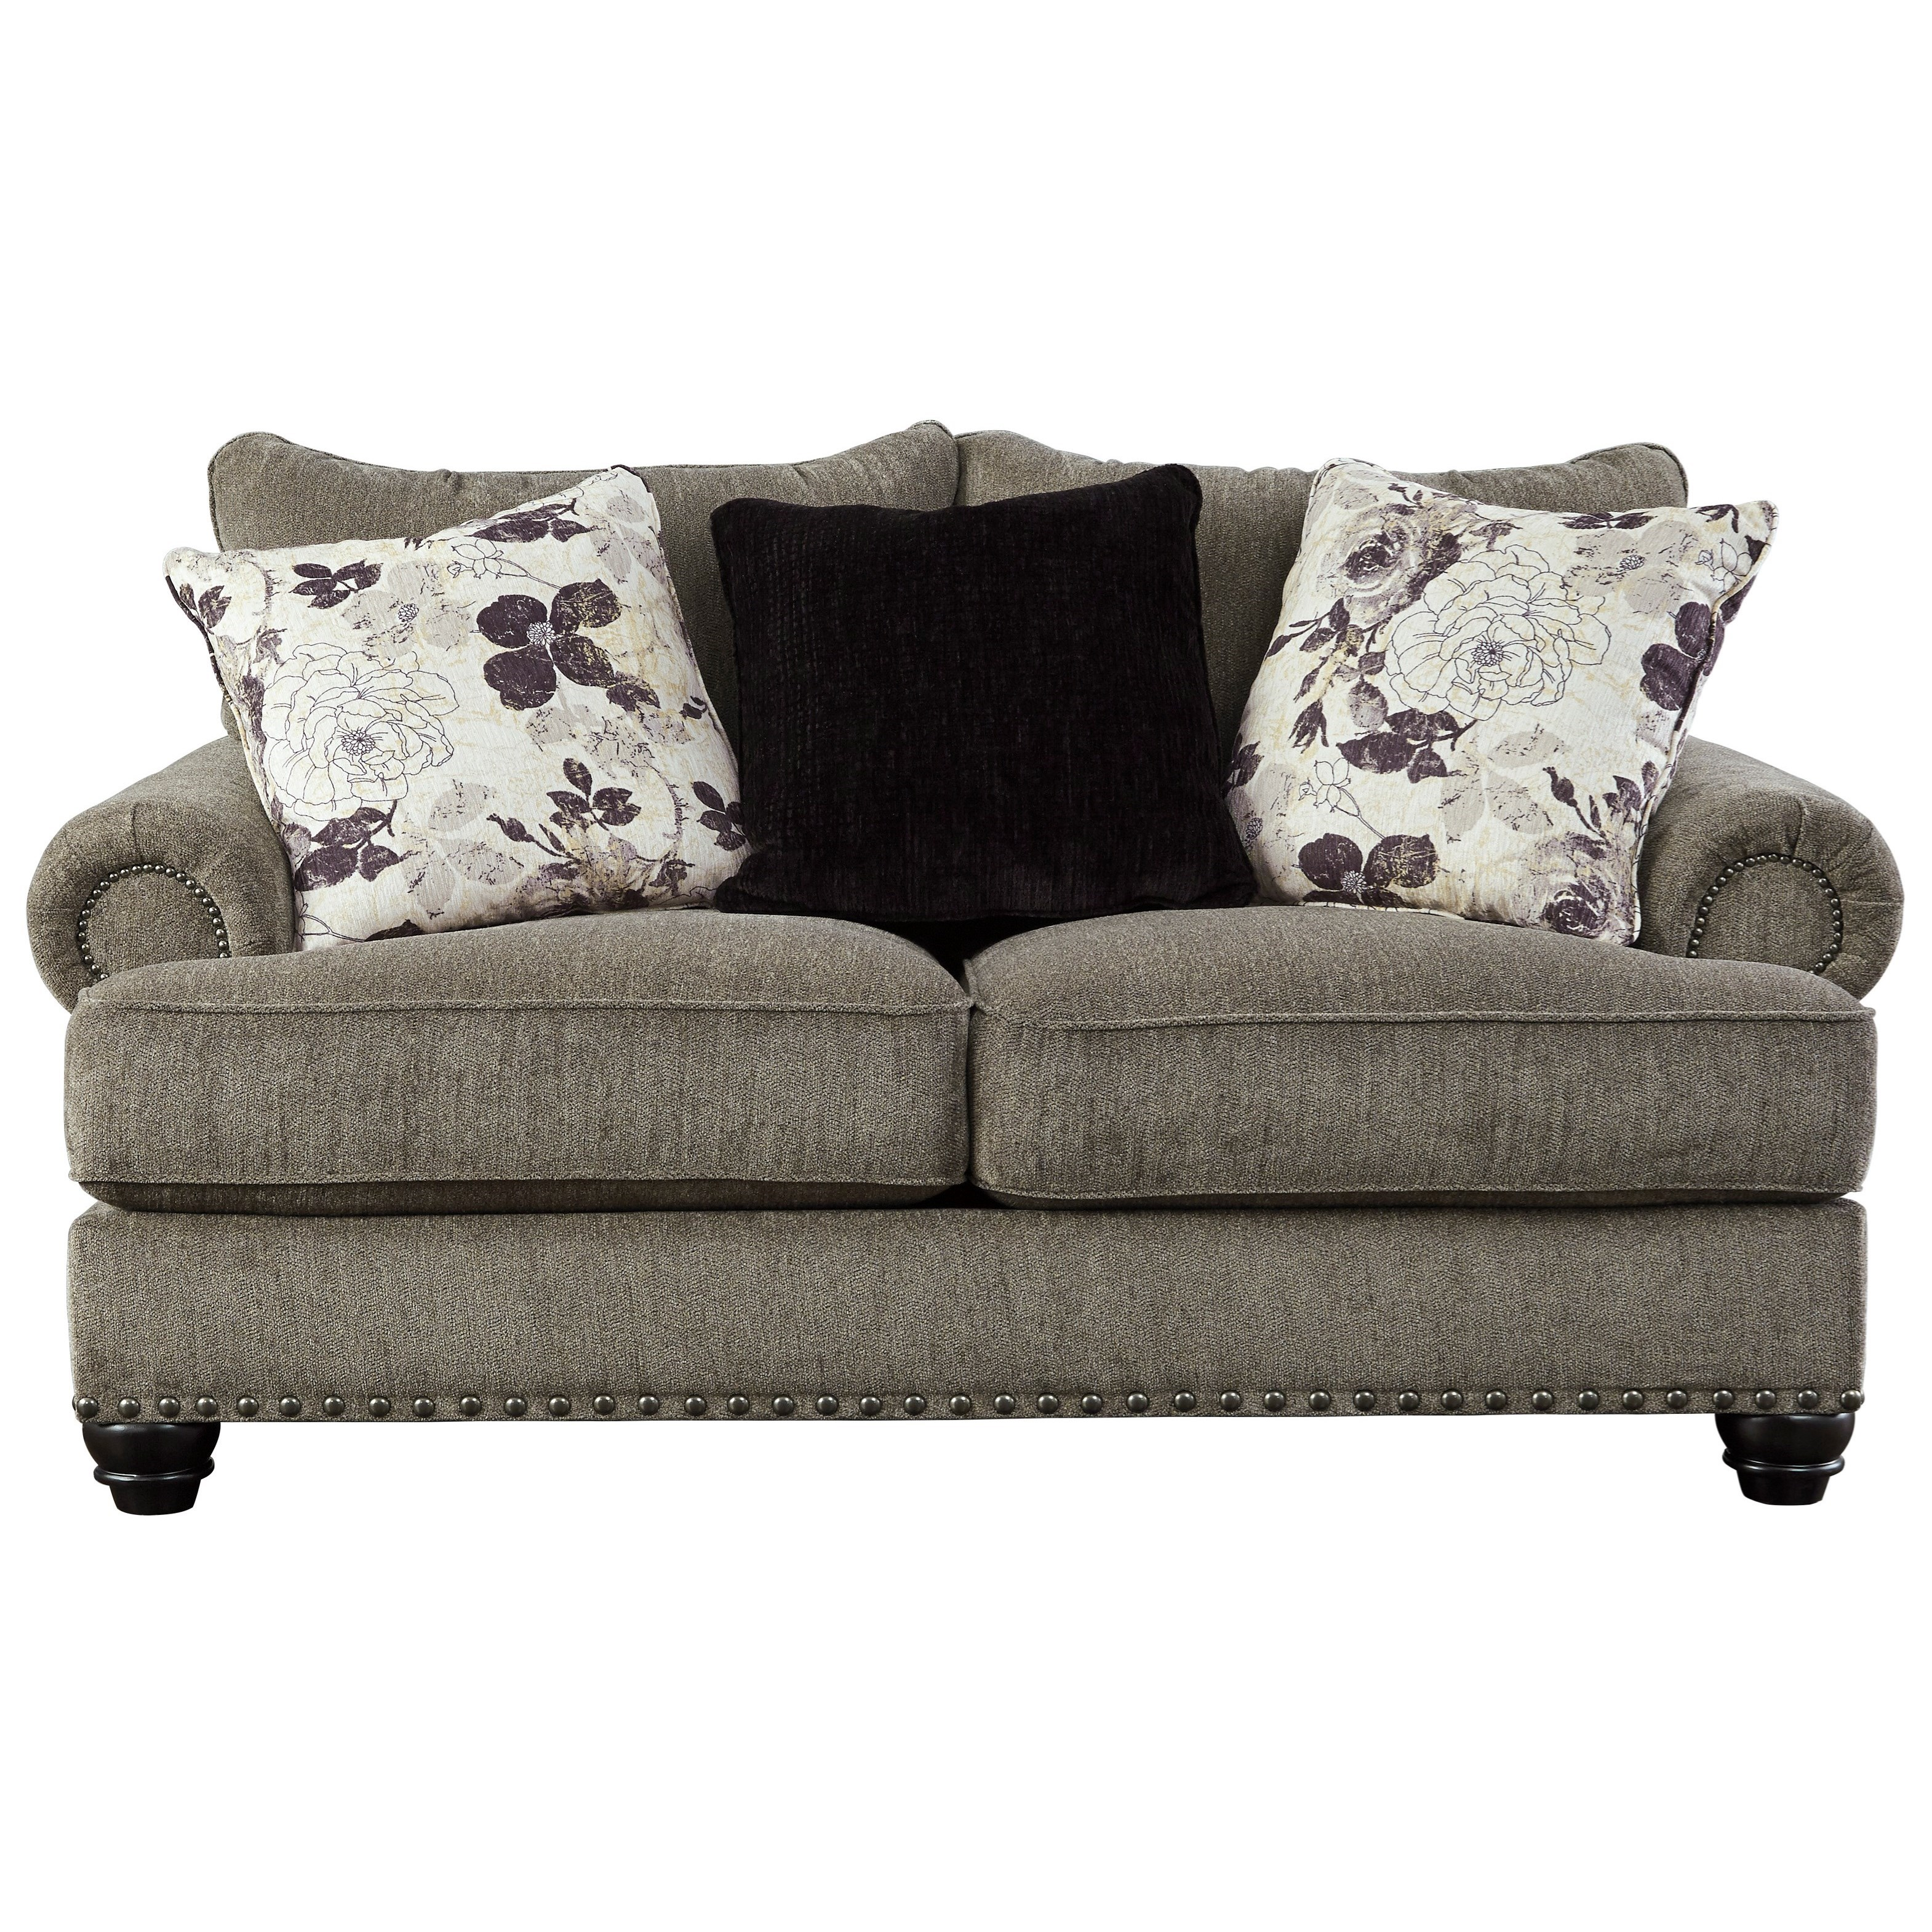 Sembler Loveseat by Benchcraft at Rife's Home Furniture